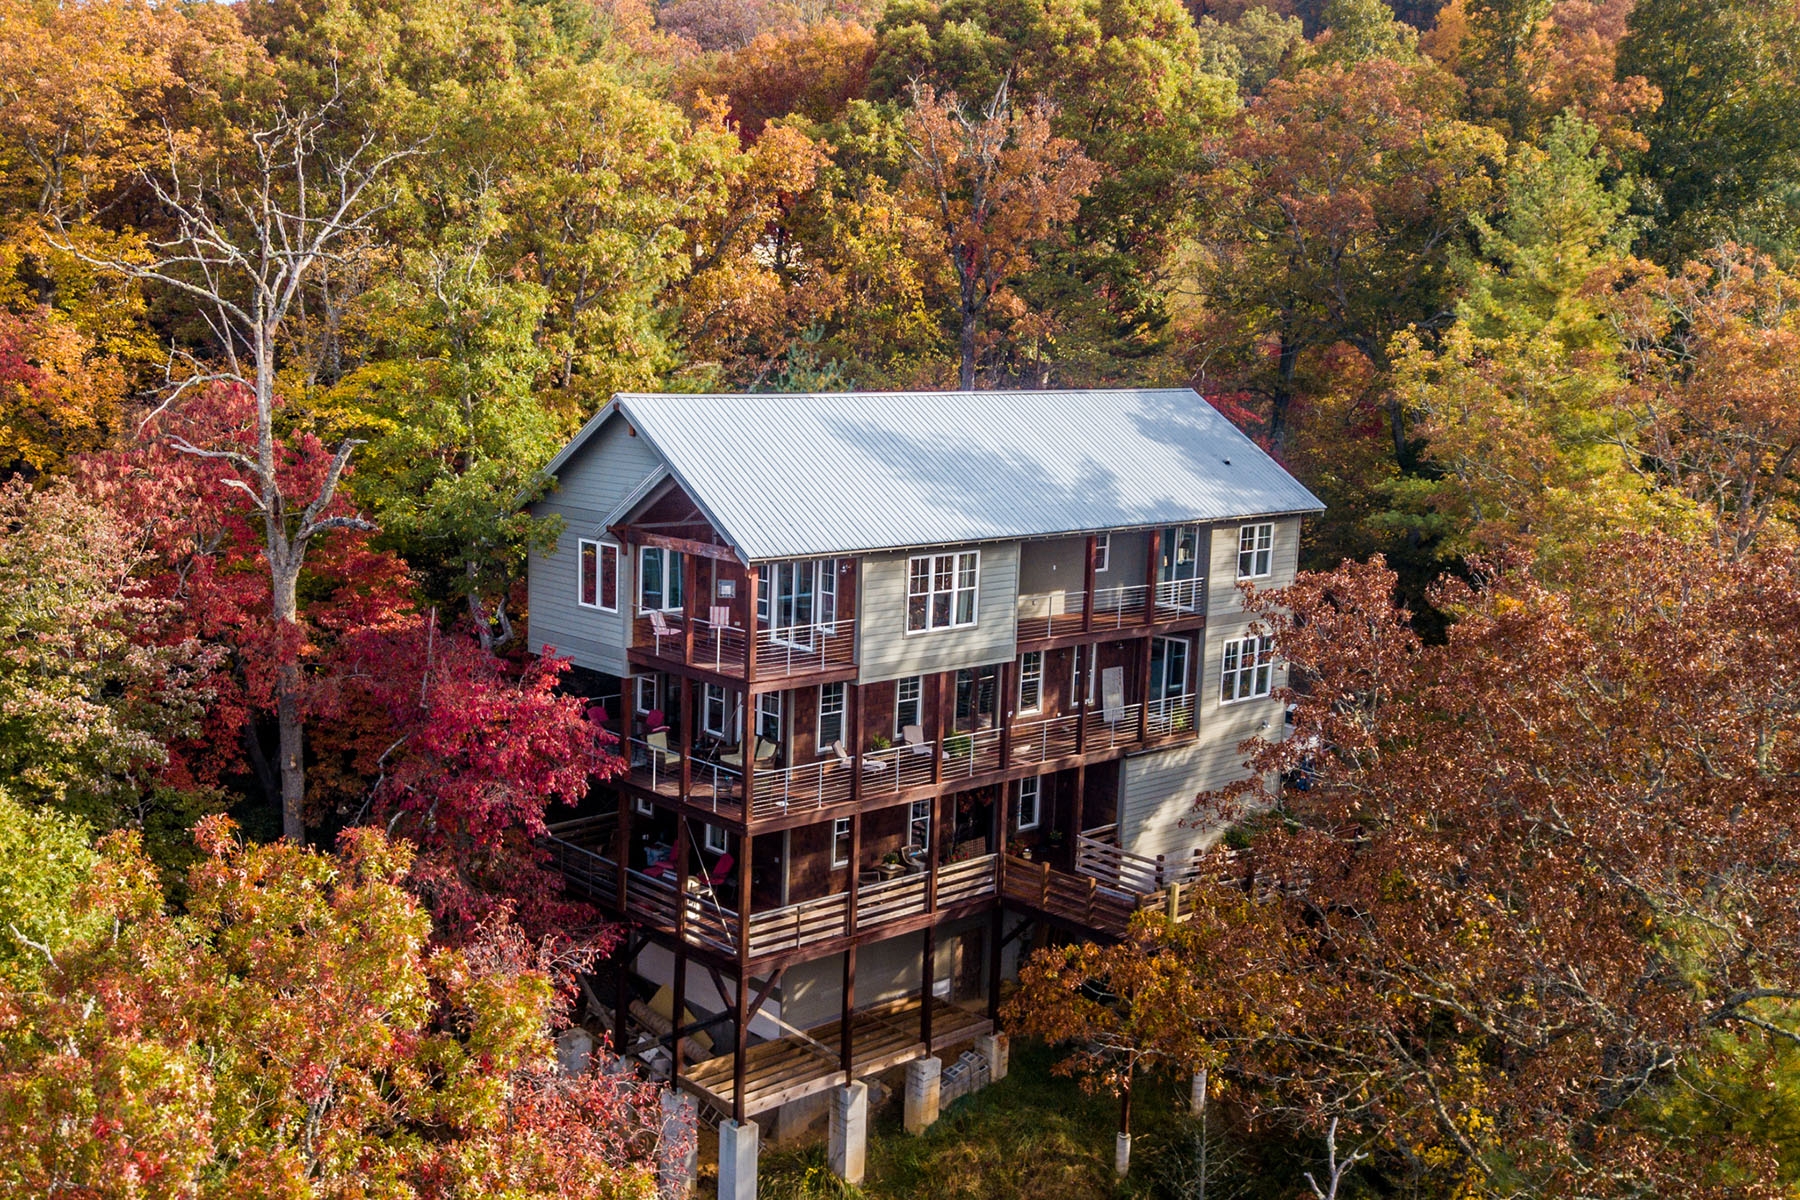 Single Family Homes for Active at 84 Old Cove Rd Black Mountain, North Carolina 28711 United States